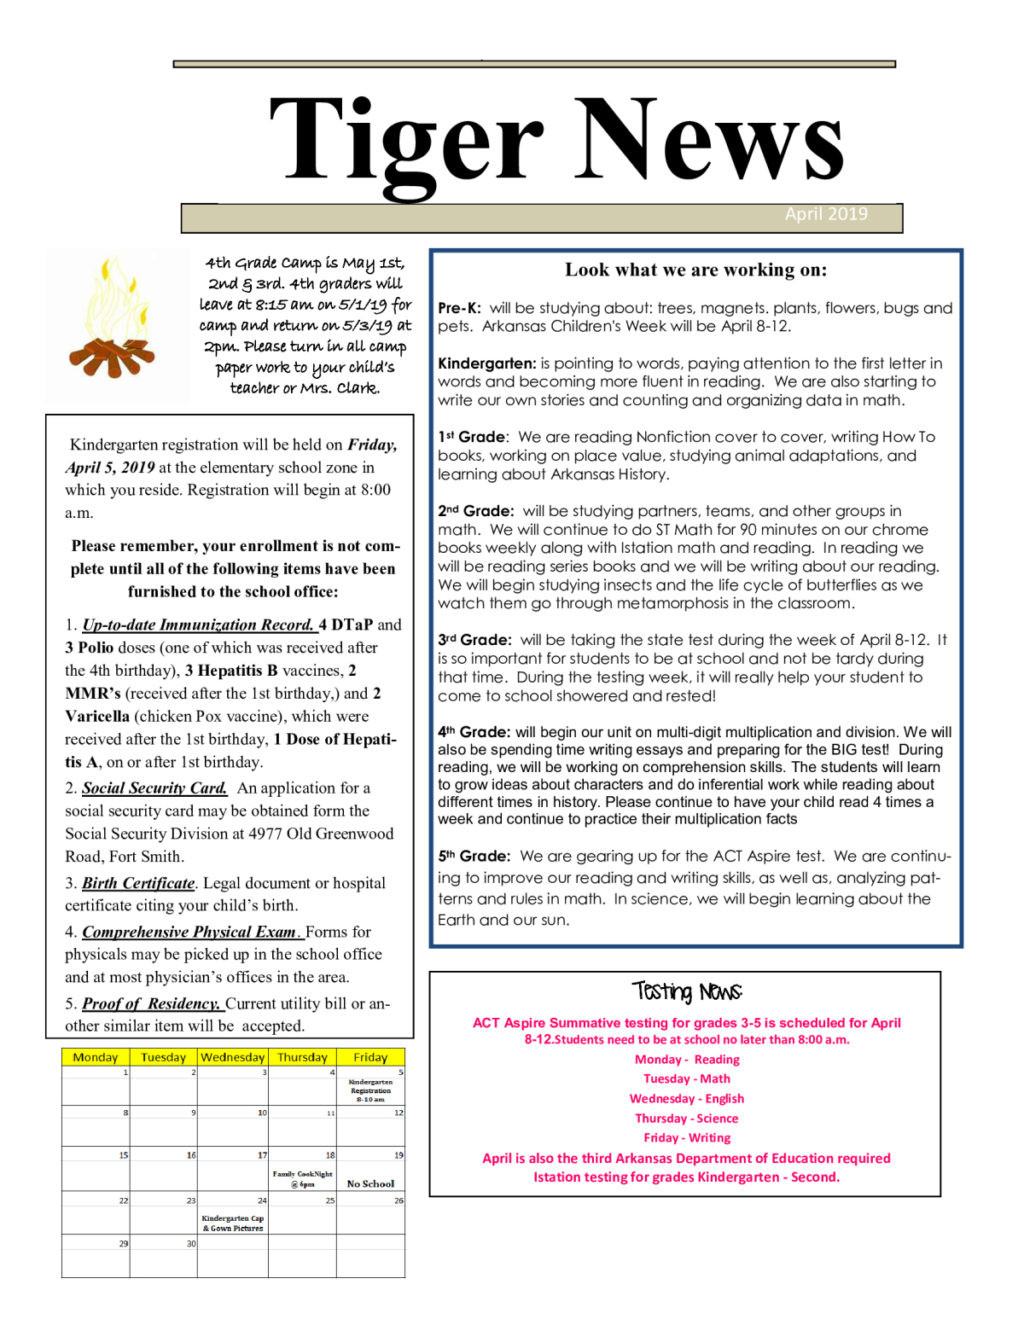 hight resolution of Animal Adaptations Worksheets 3rd Grade   Printable Worksheets and  Activities for Teachers